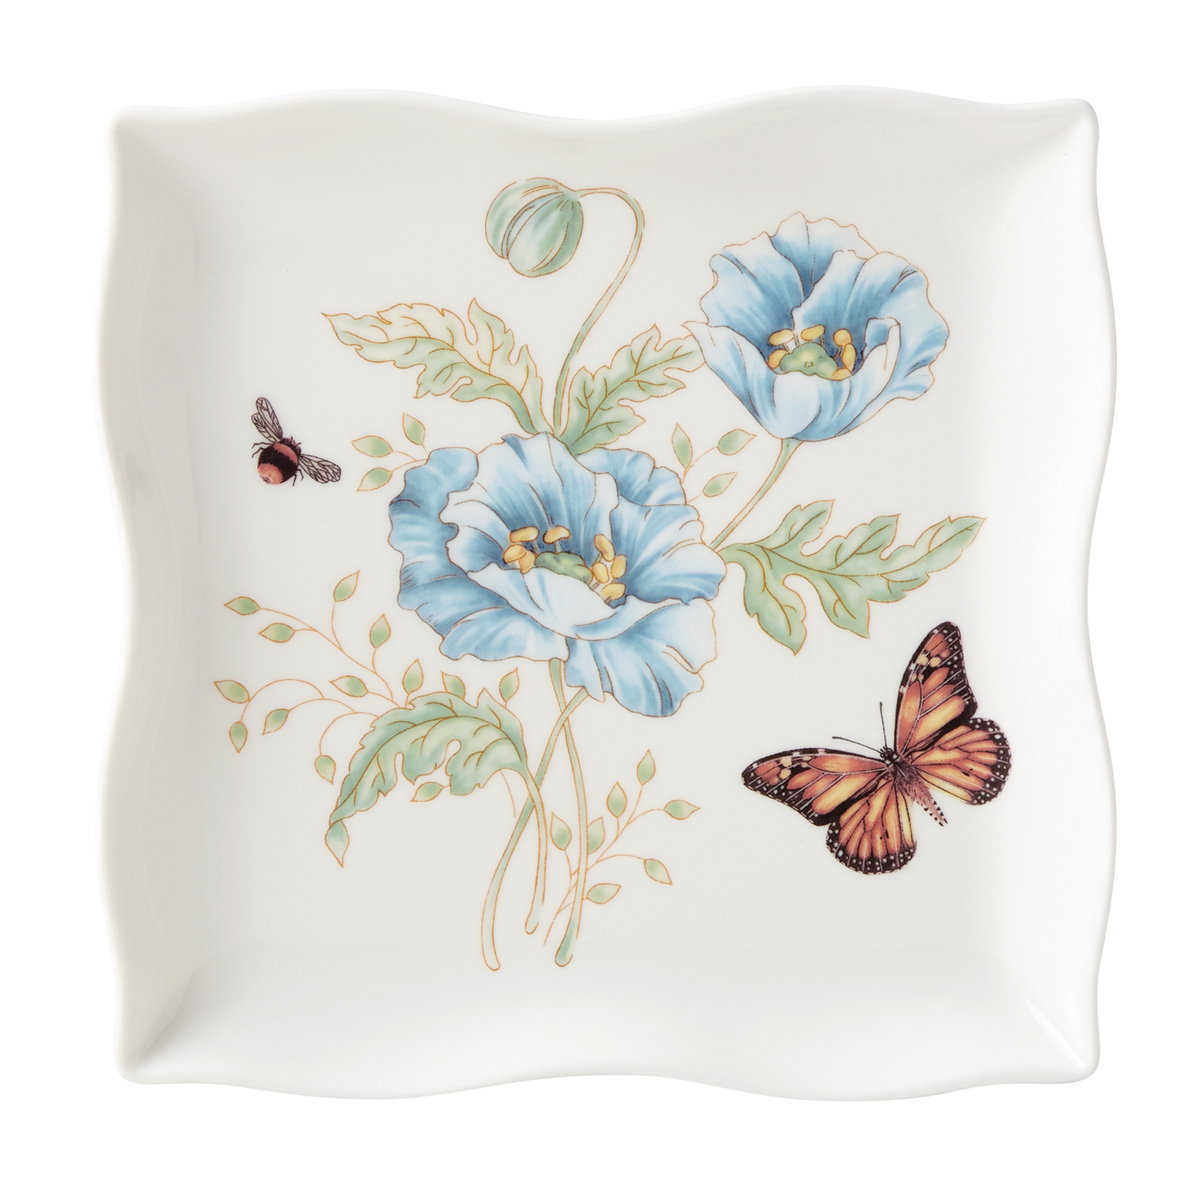 Lenox Butterfly Meadow Dinnerware Square Dish